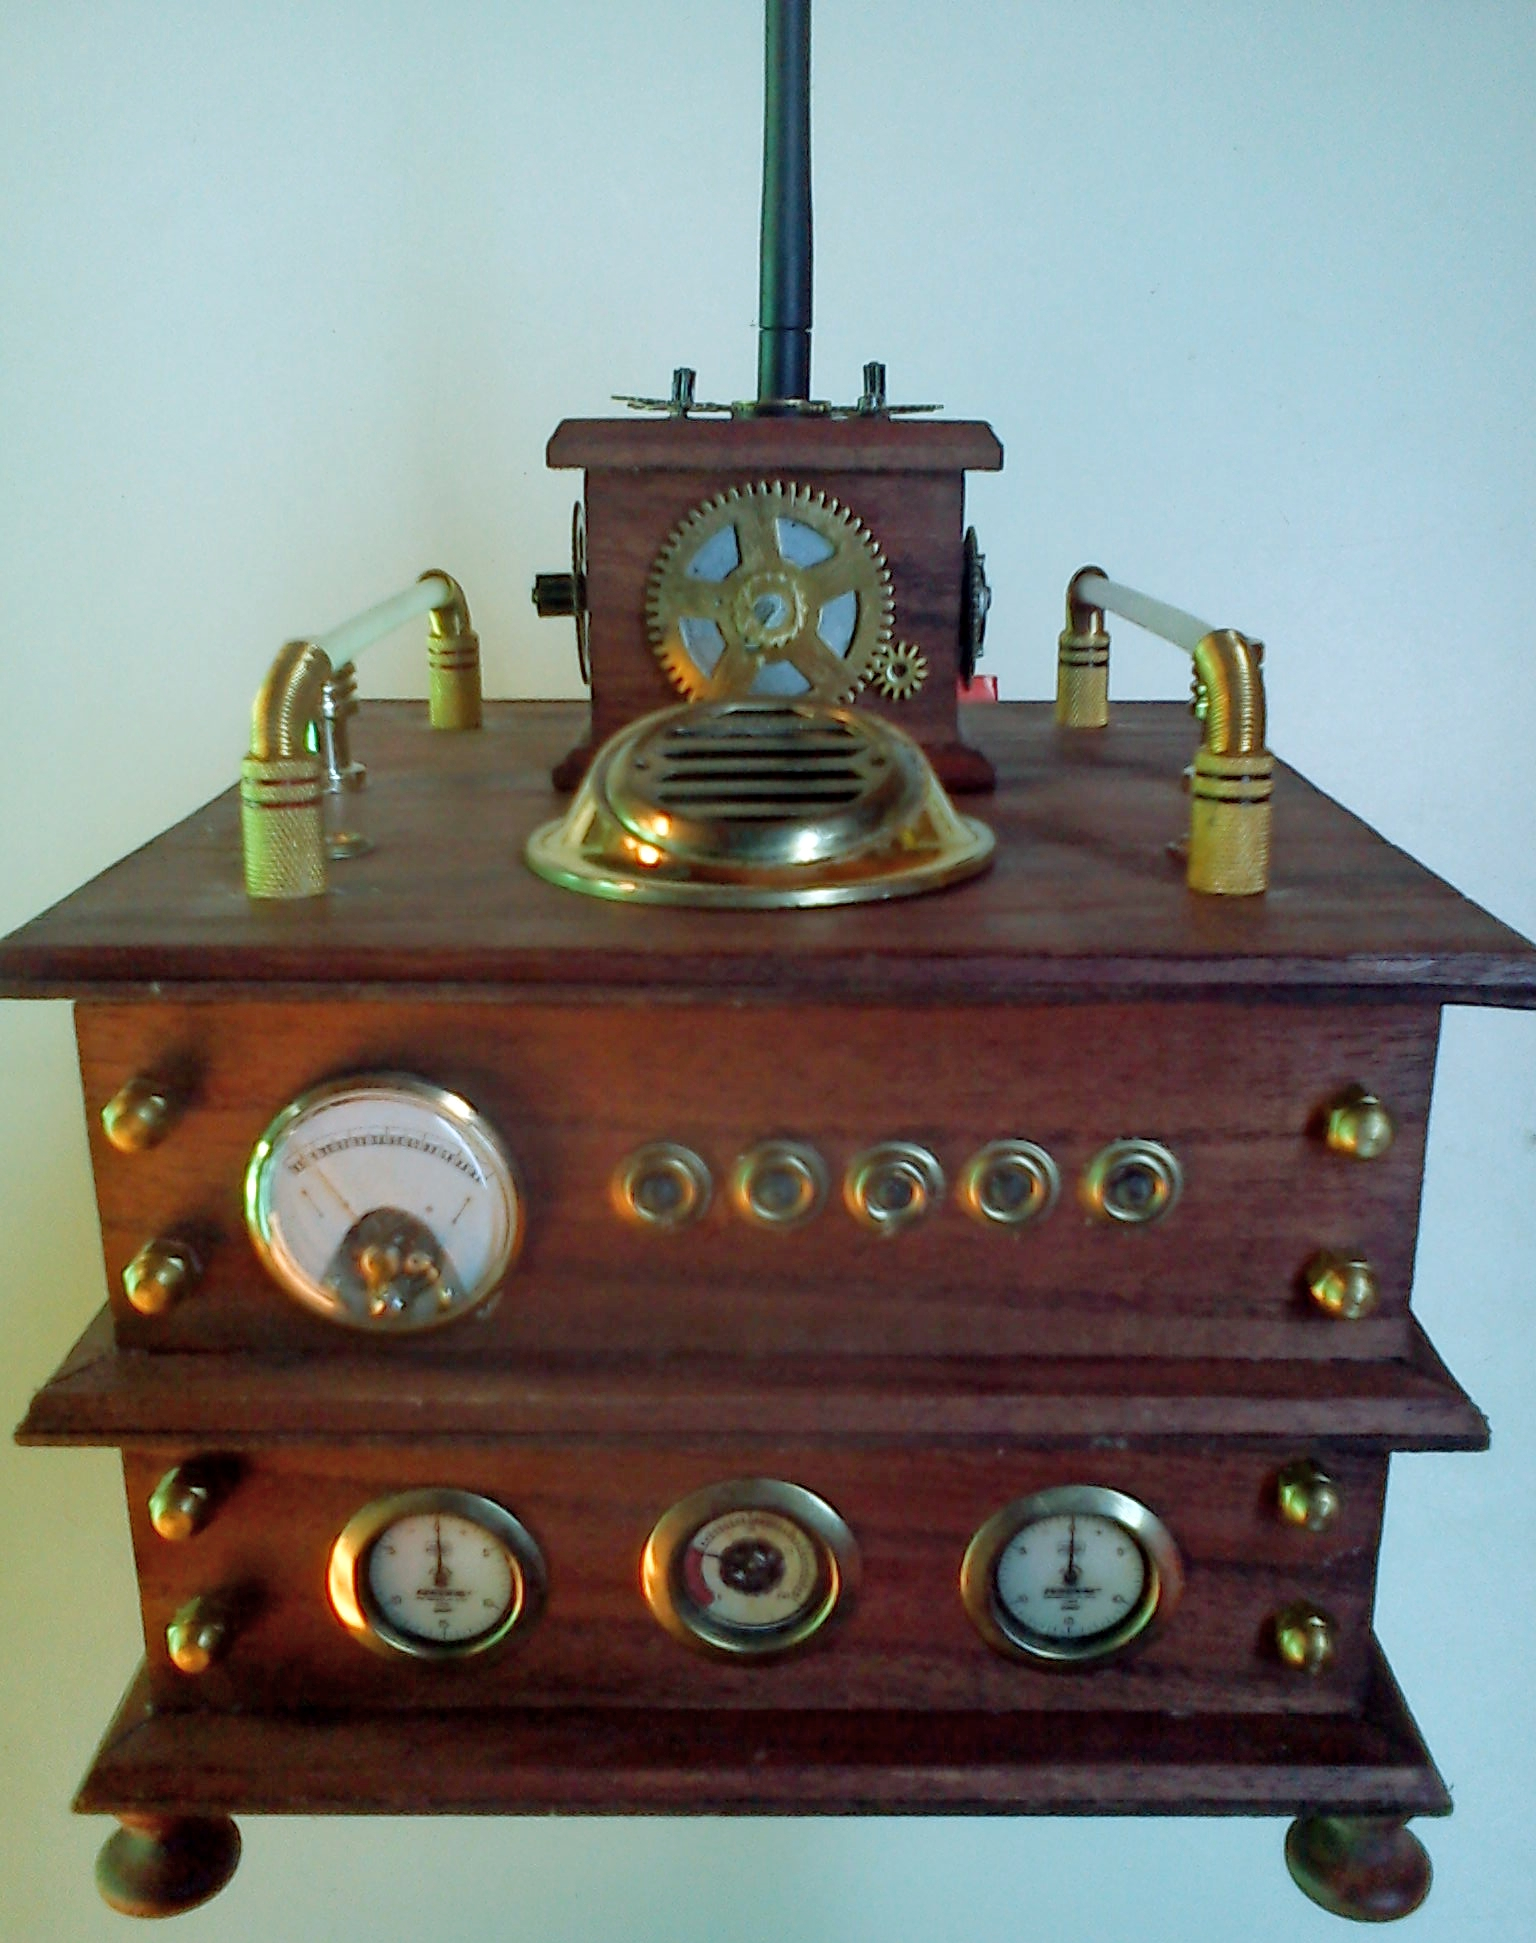 Picture of Steampunk Network Center